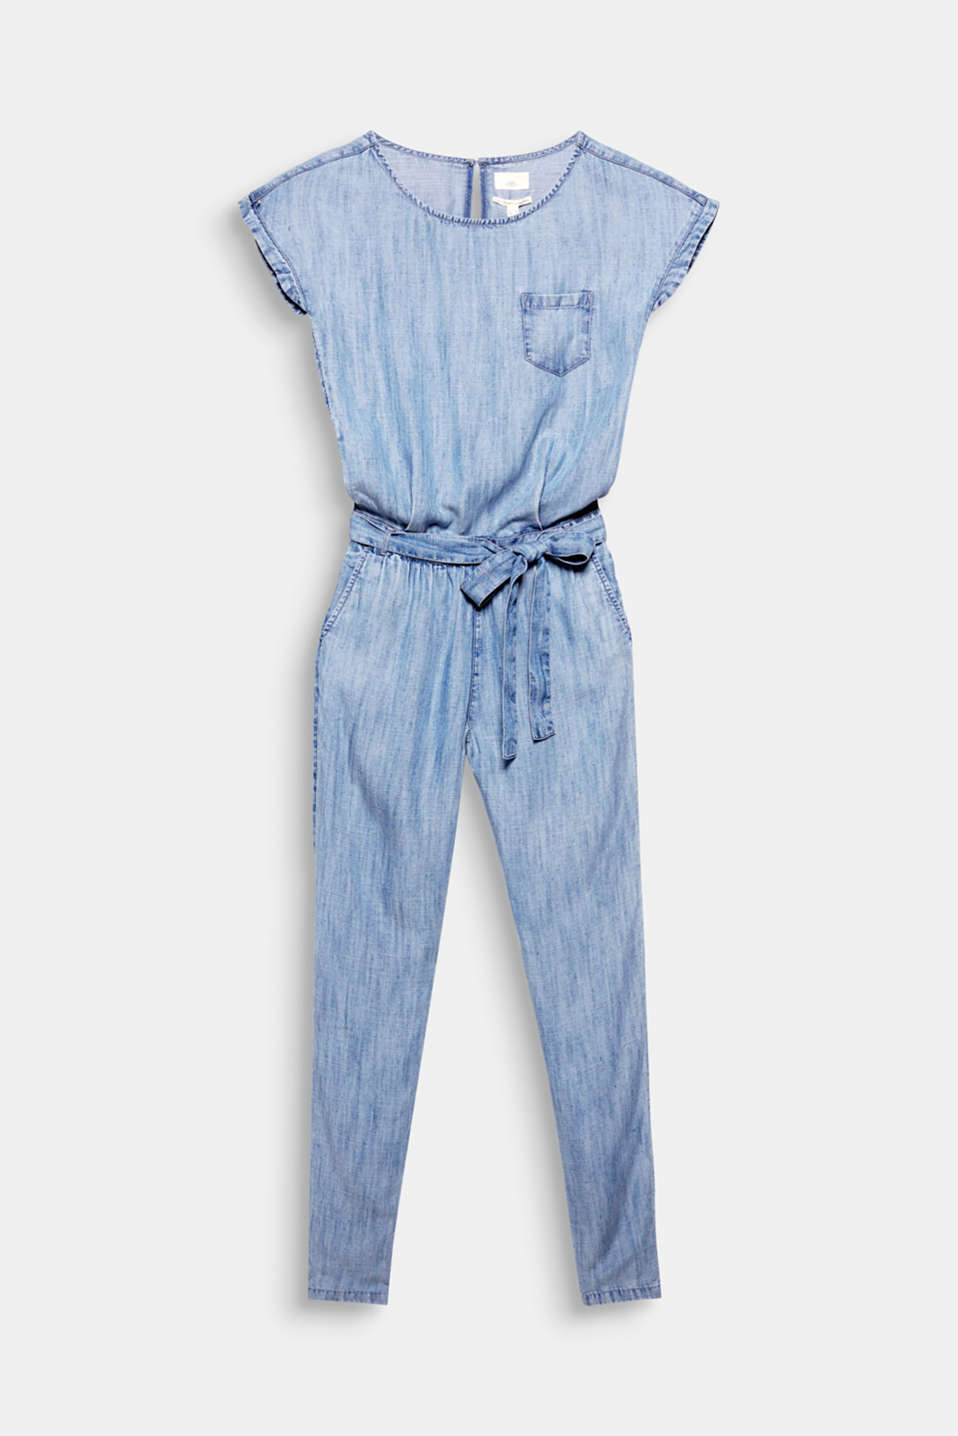 A quick trendy outfit: With this lightweight jumpsuit in a summery denim look, simply slip it on for a quick casual and trendy look!